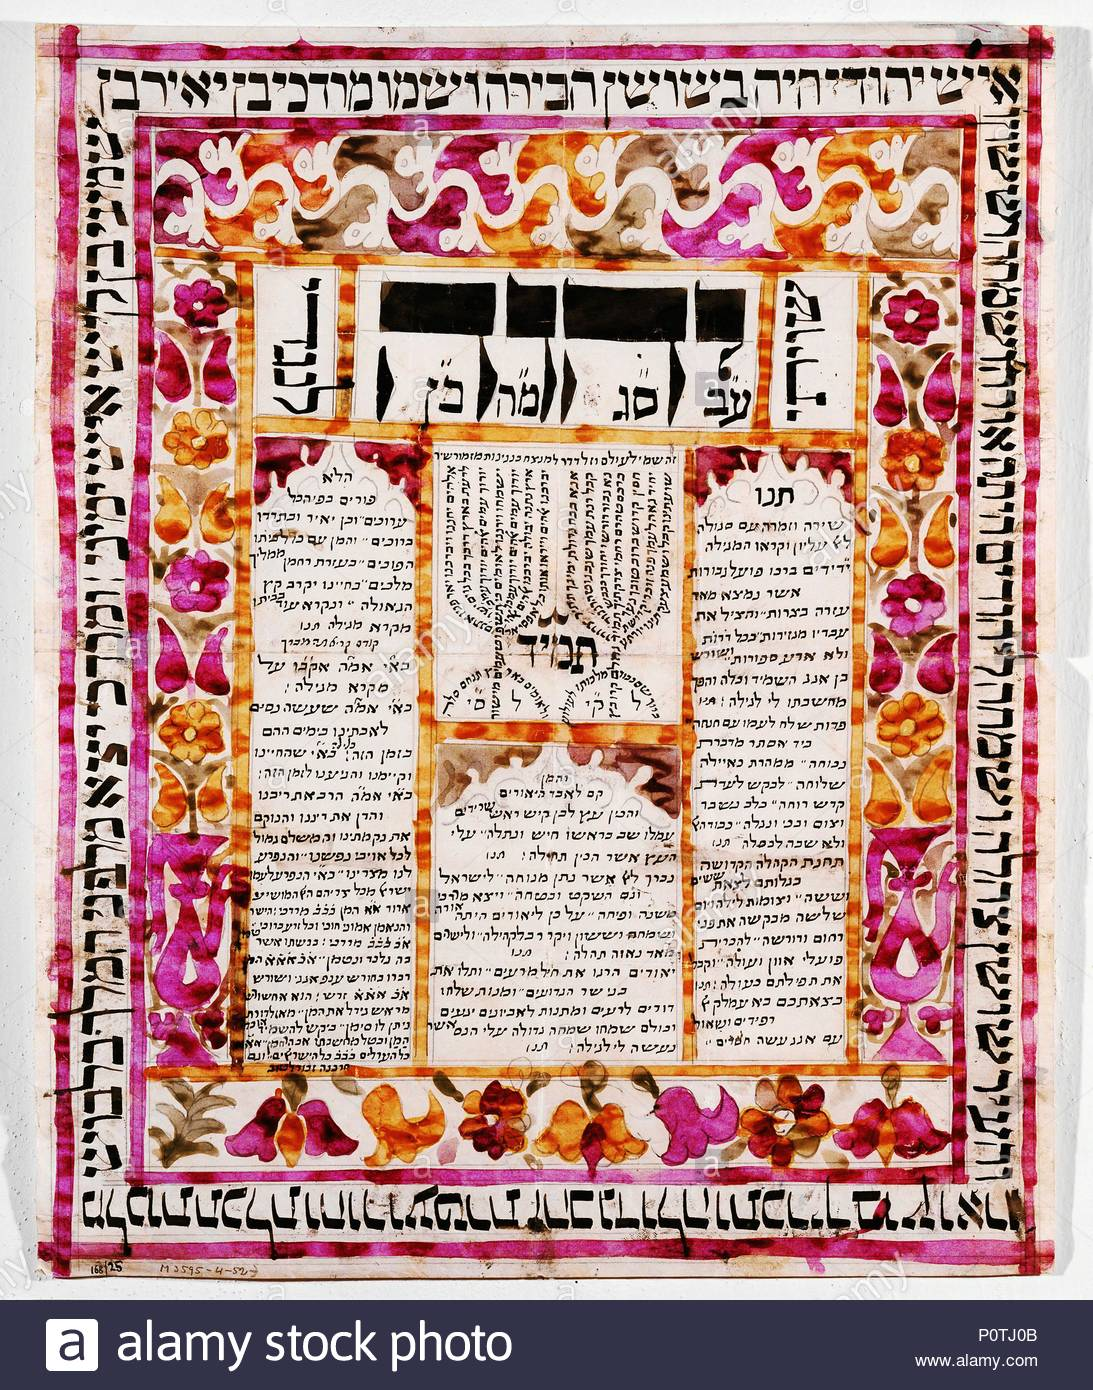 Shiviti, a decorative plaque usually set in the eastern wall of a synagogue, like a mizrach, to indicate the proper direction of prayer. This shiviti contains biblical verses written in the form of a menorah. From Persia. Ink and watercolour on paper,41,9 x 33,9 cm. Location: Israel Museum, Jerusalem, Israel. - Stock Image